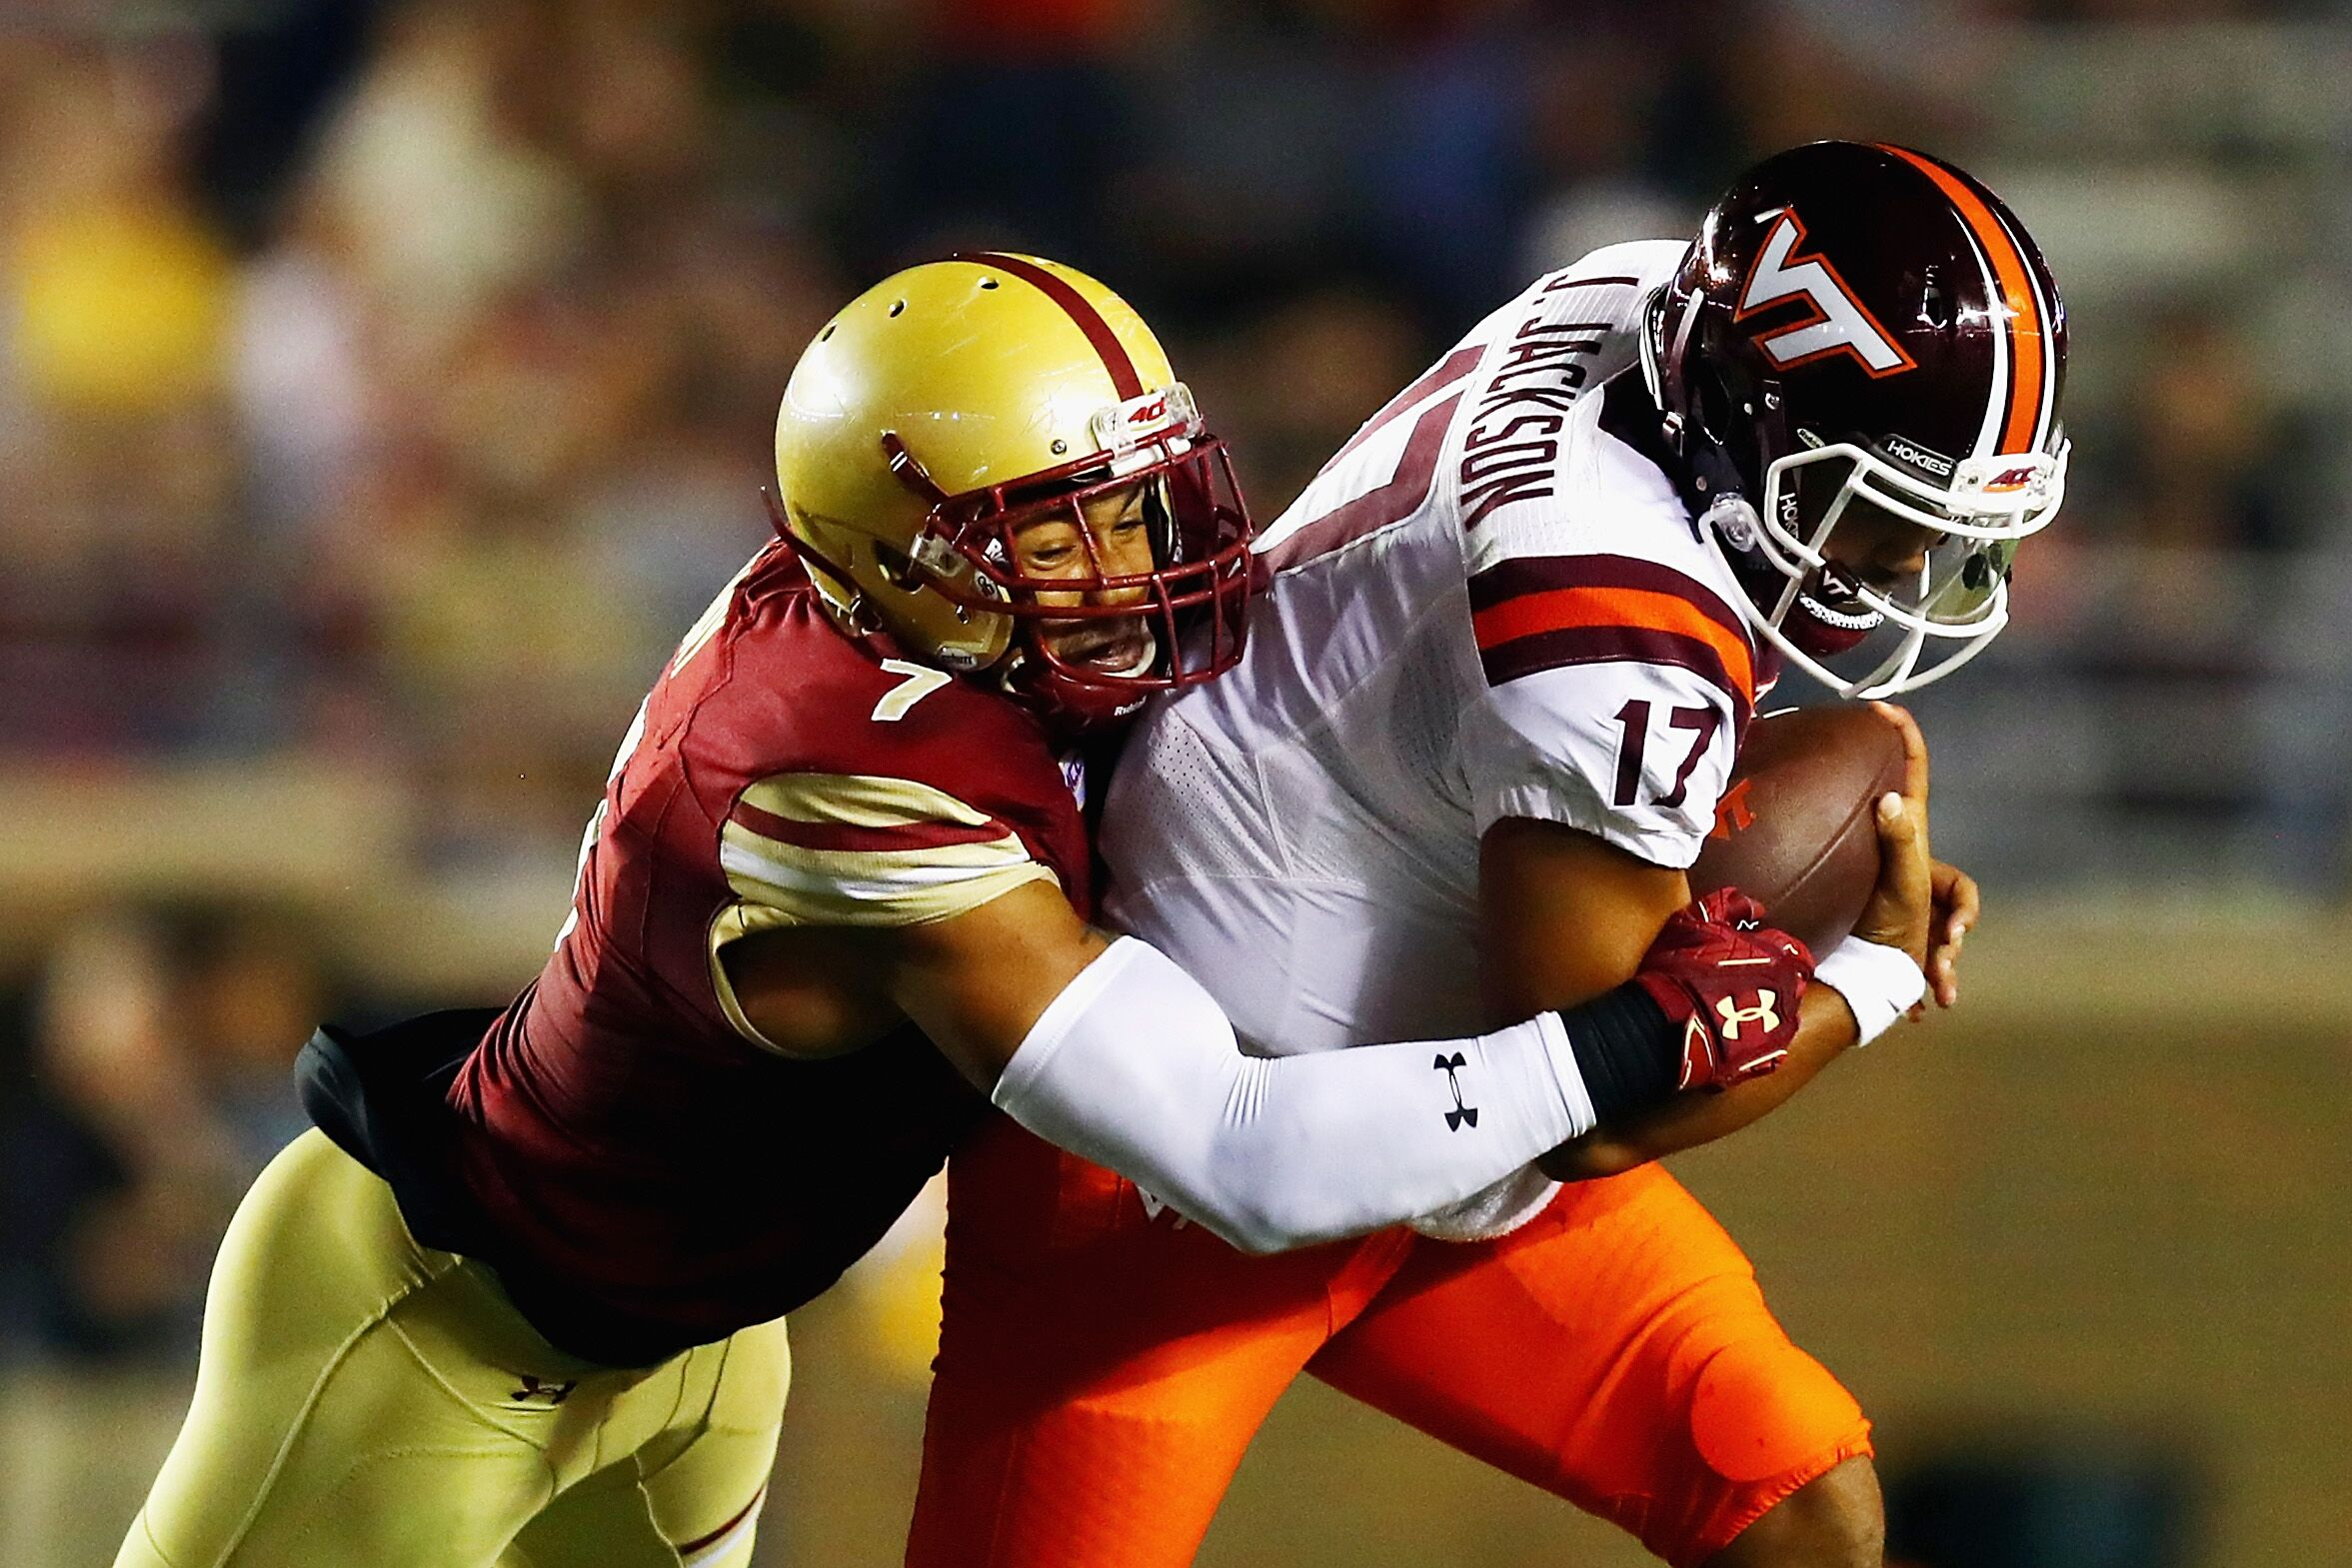 859849808-virginia-tech-v-boston-college.jpg